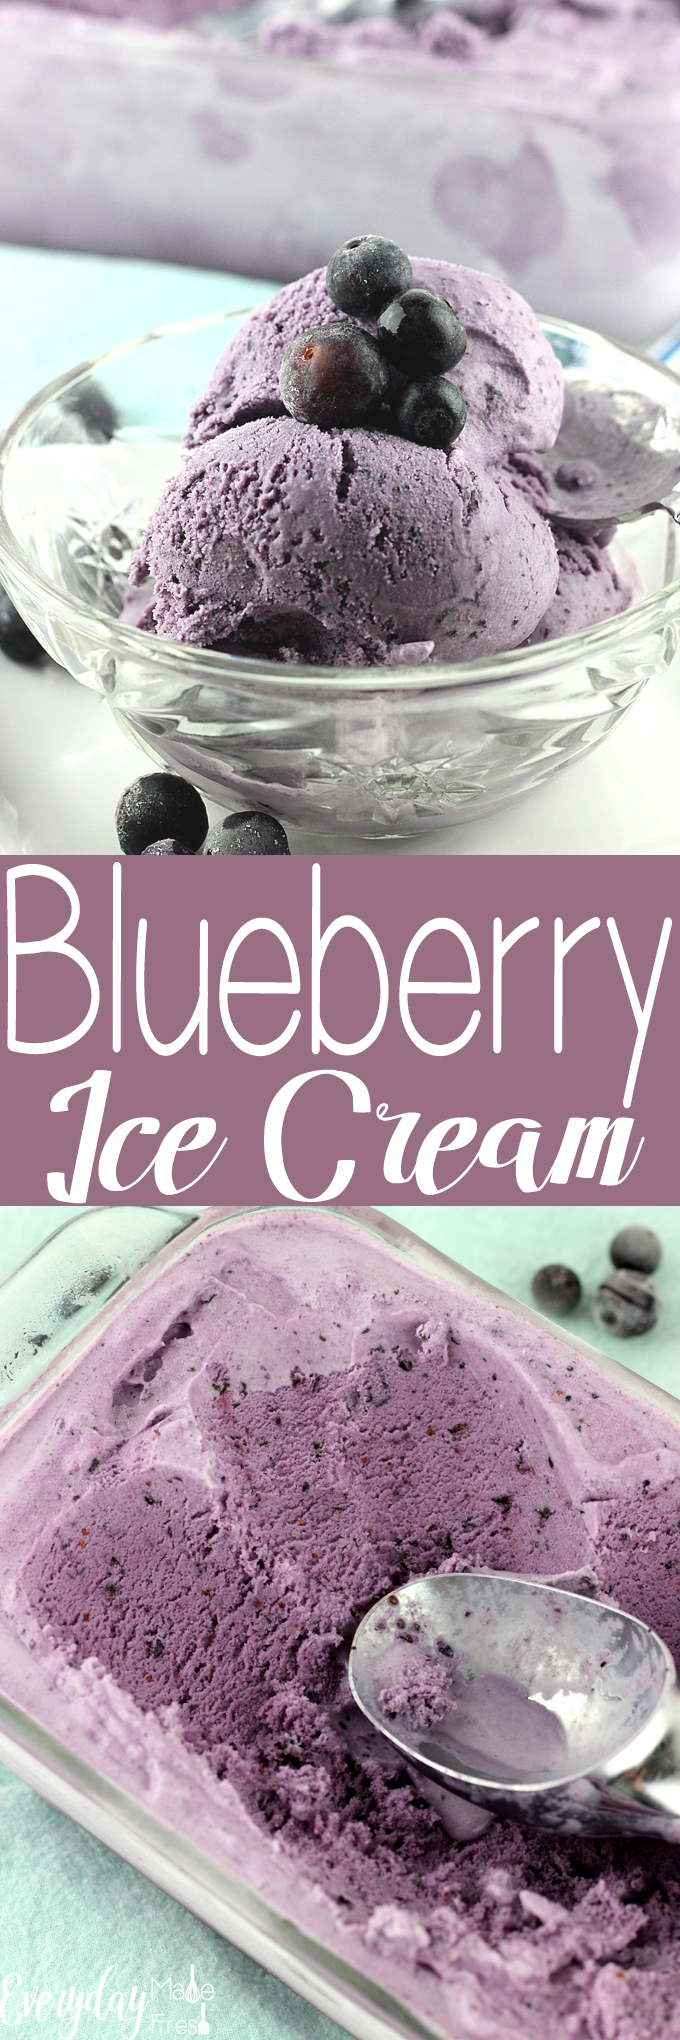 This Blueberry Ice Cream is made with fresh blueberries, and is perfectly rich and creamy. It's a great way to cool off this summer. | EverydayMadeFresh.com